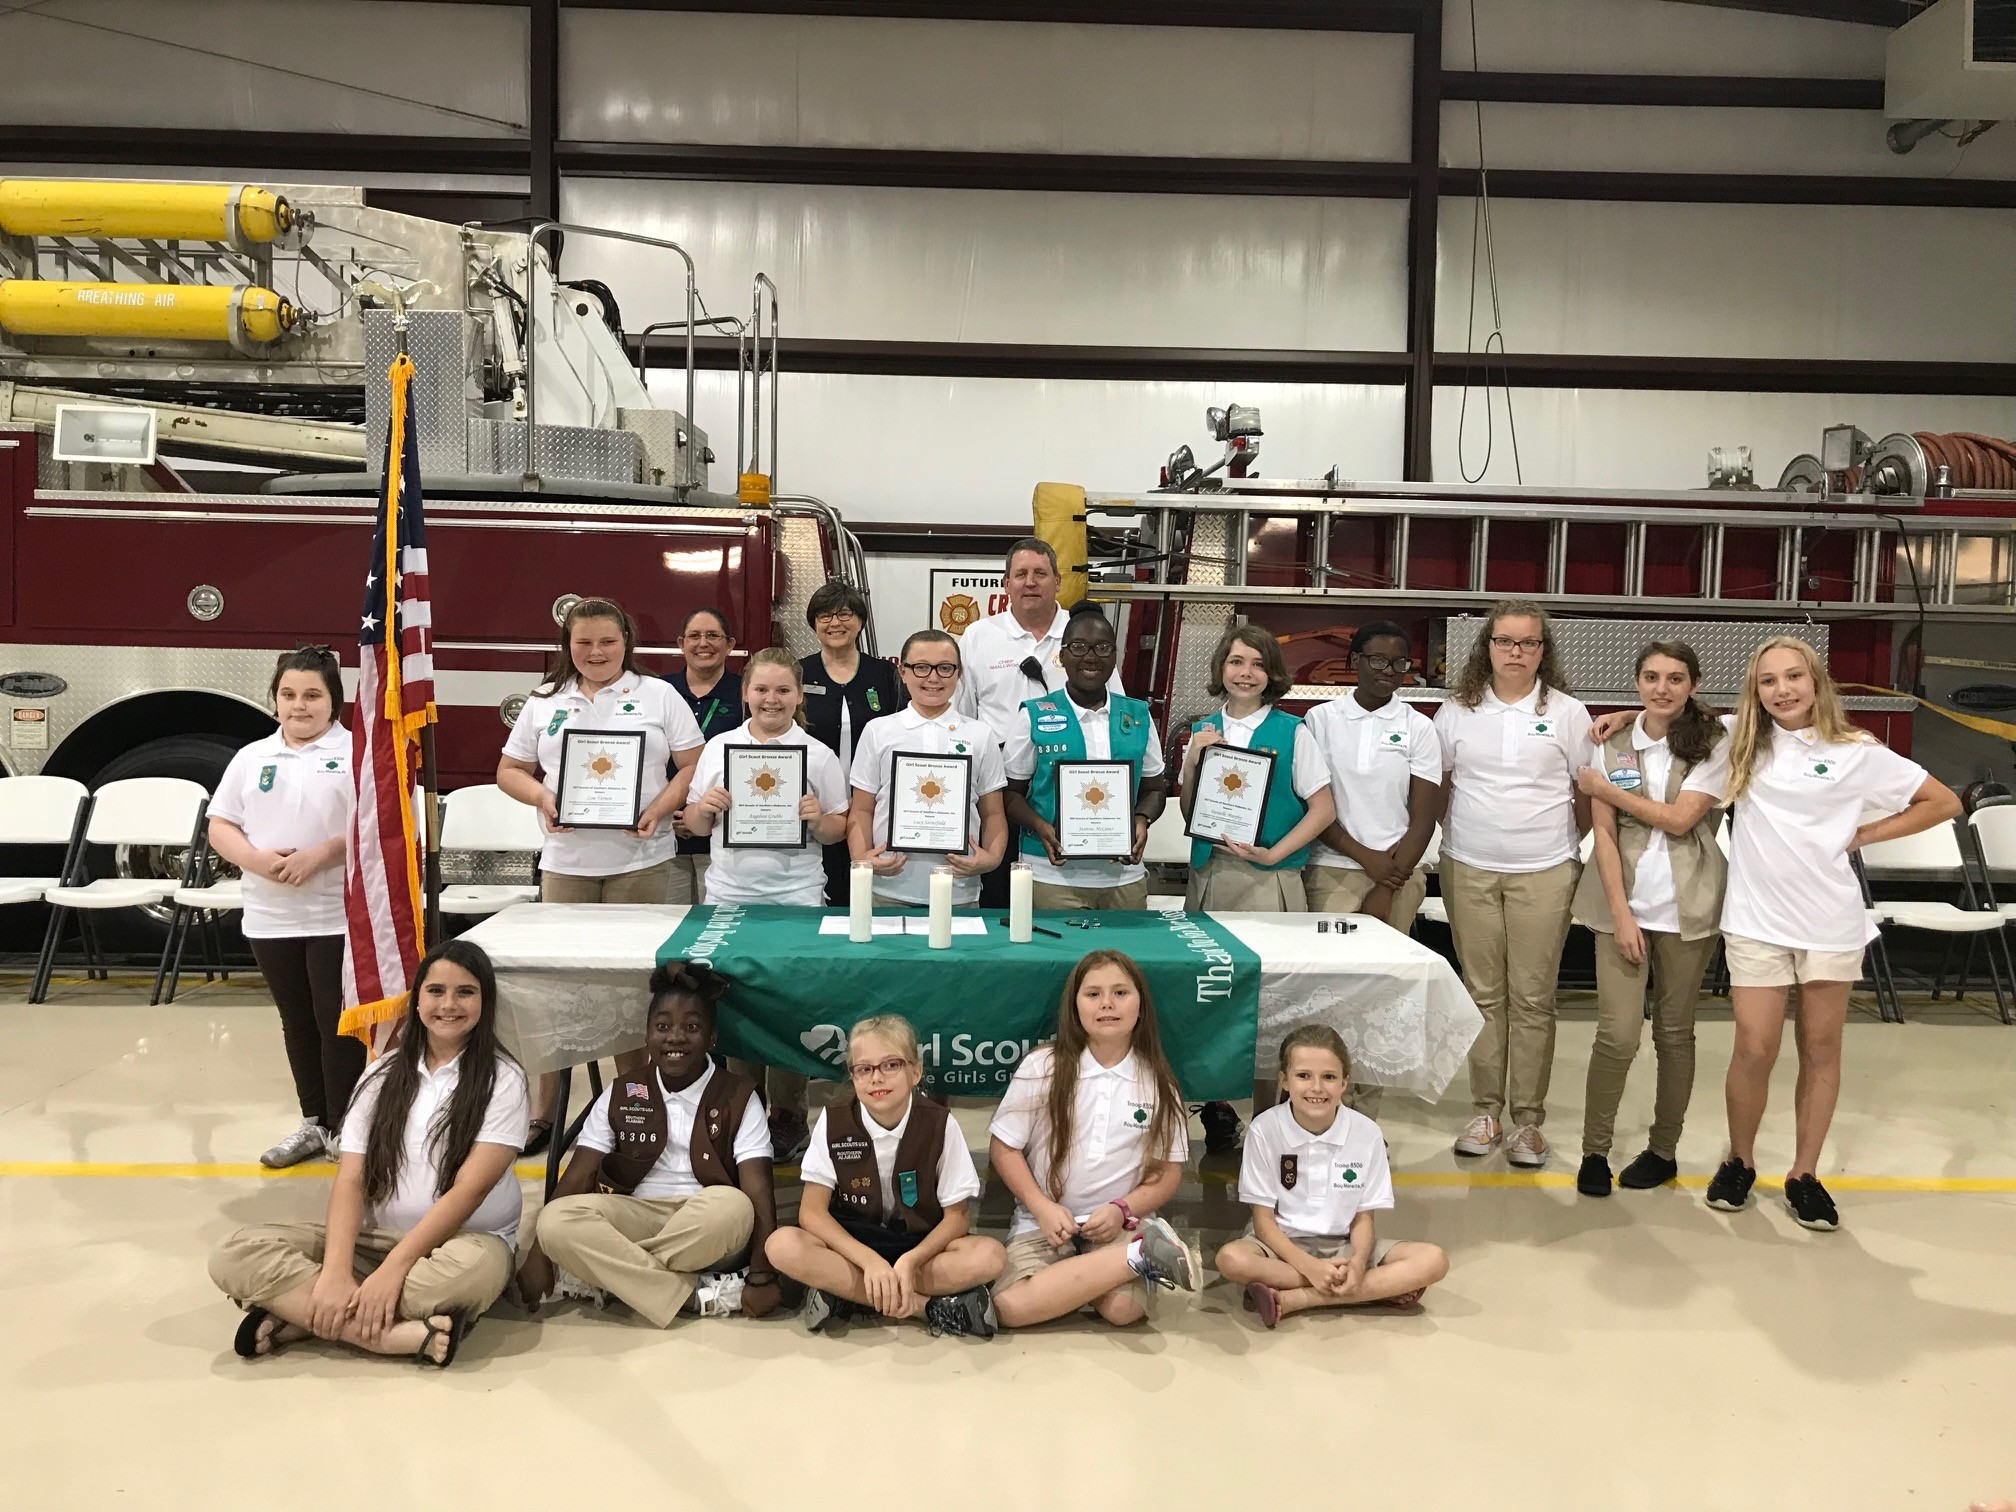 Girl Scouts 1: Girl Scout Troop 8306 of Bay Minette held their award ceremony at Crossroad's Volunteer Fire Department Station 1 in Bay Minette. Five scouts from Girl Scout Troop 8306 earned their Bronze Award. They are: Those that received the Bronze Award are: Angelina Grubbs, Zoie Vernon, Jasmine McCants, Lucy Satterfield and Danielle Murphy.